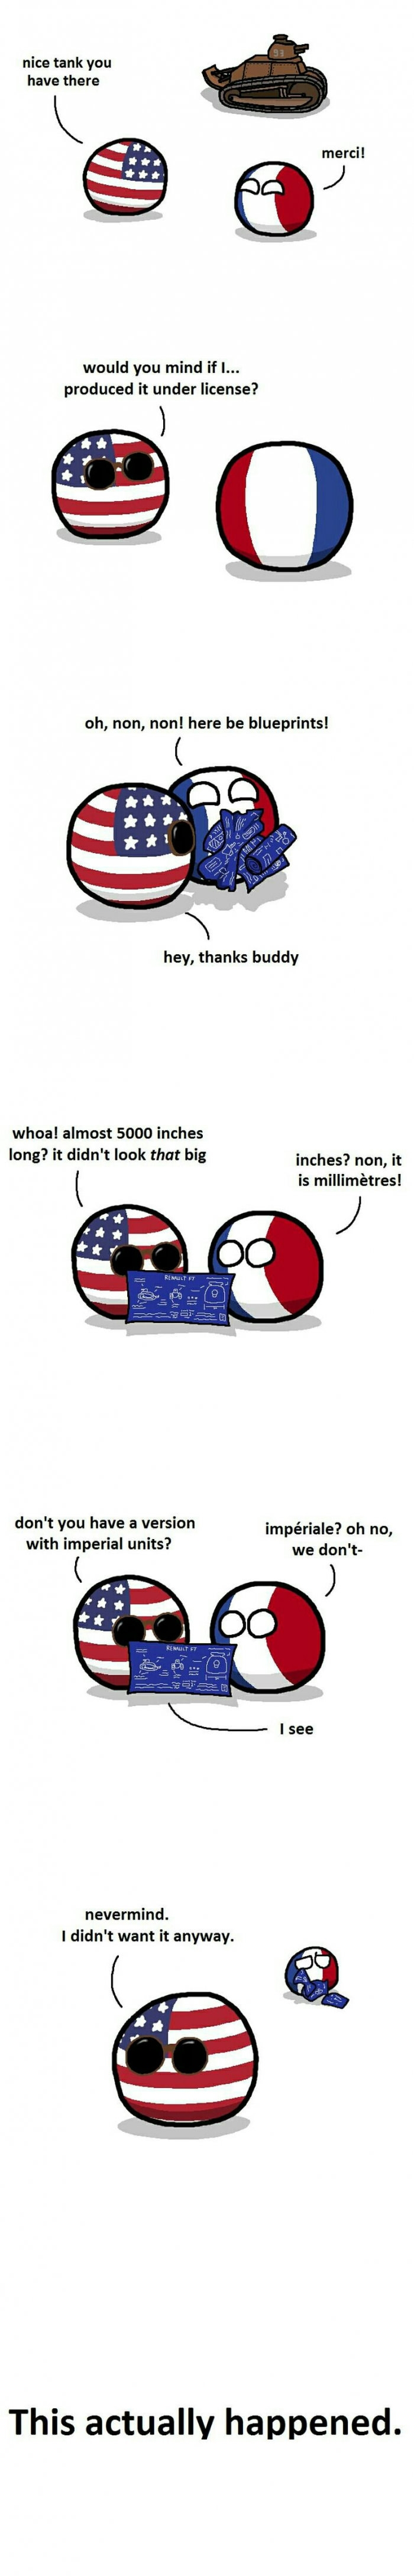 Imperial units master race